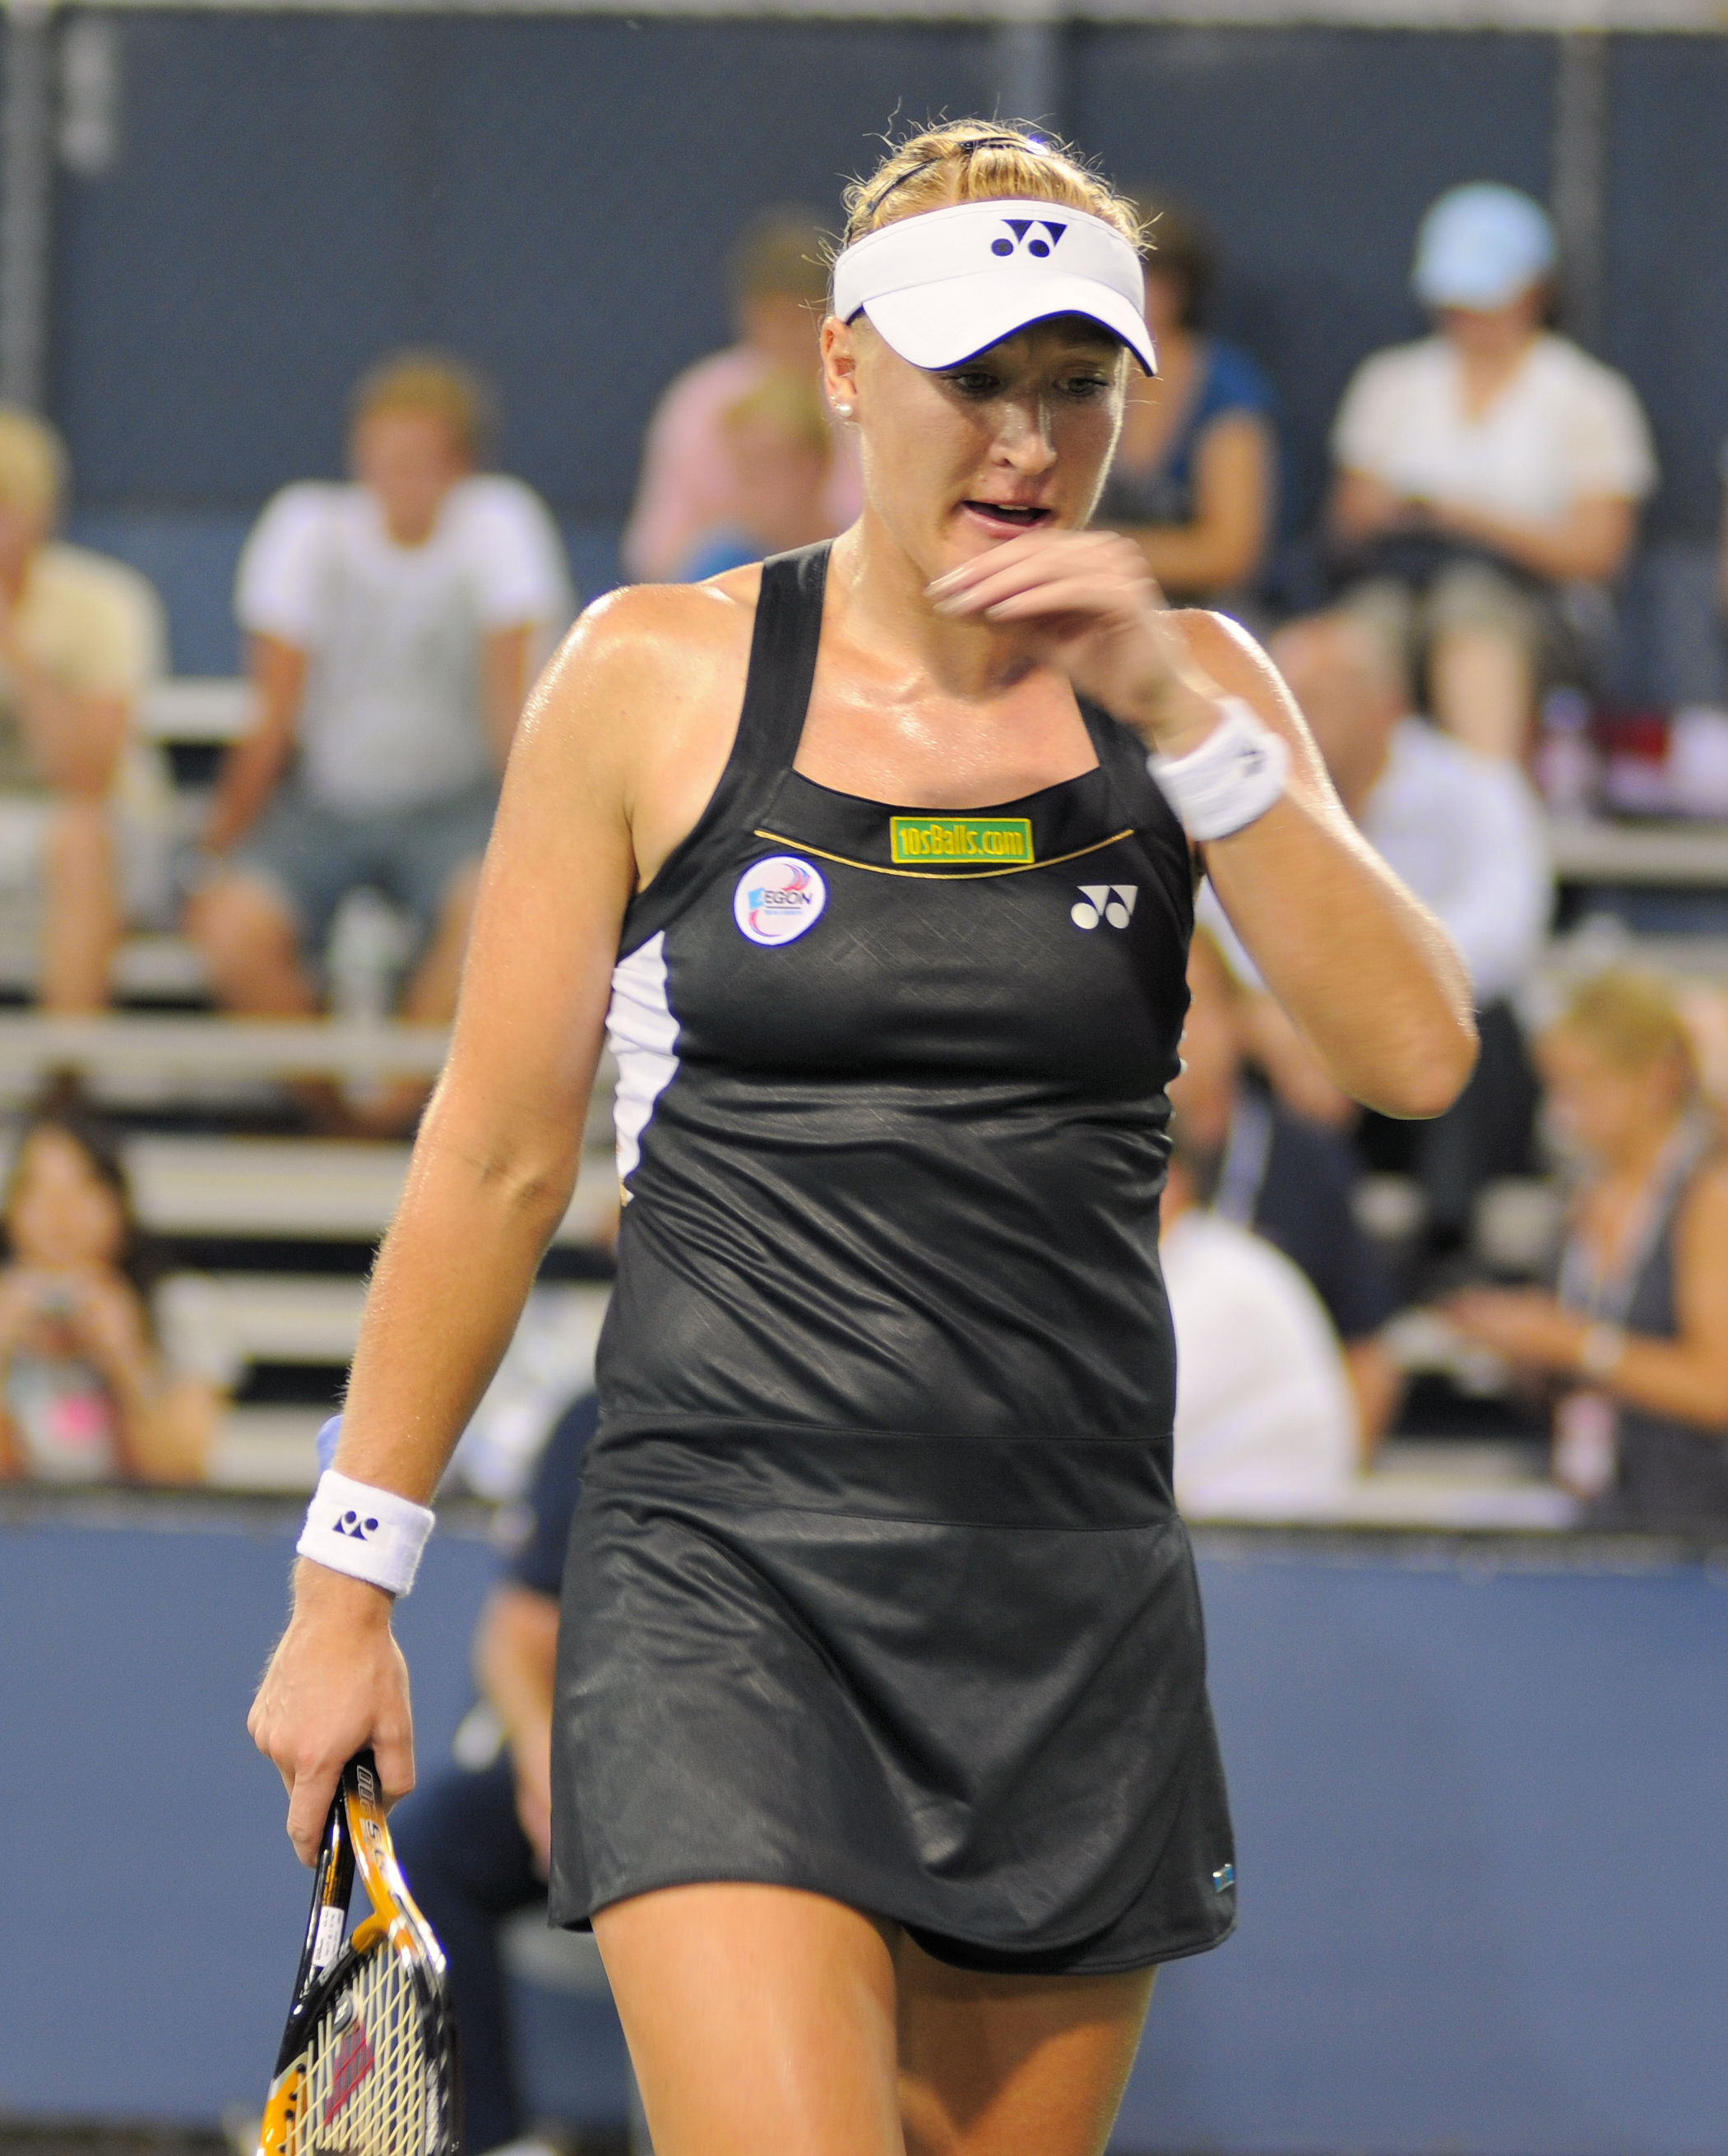 Alina Li Real Name elena baltacha - wikipedia